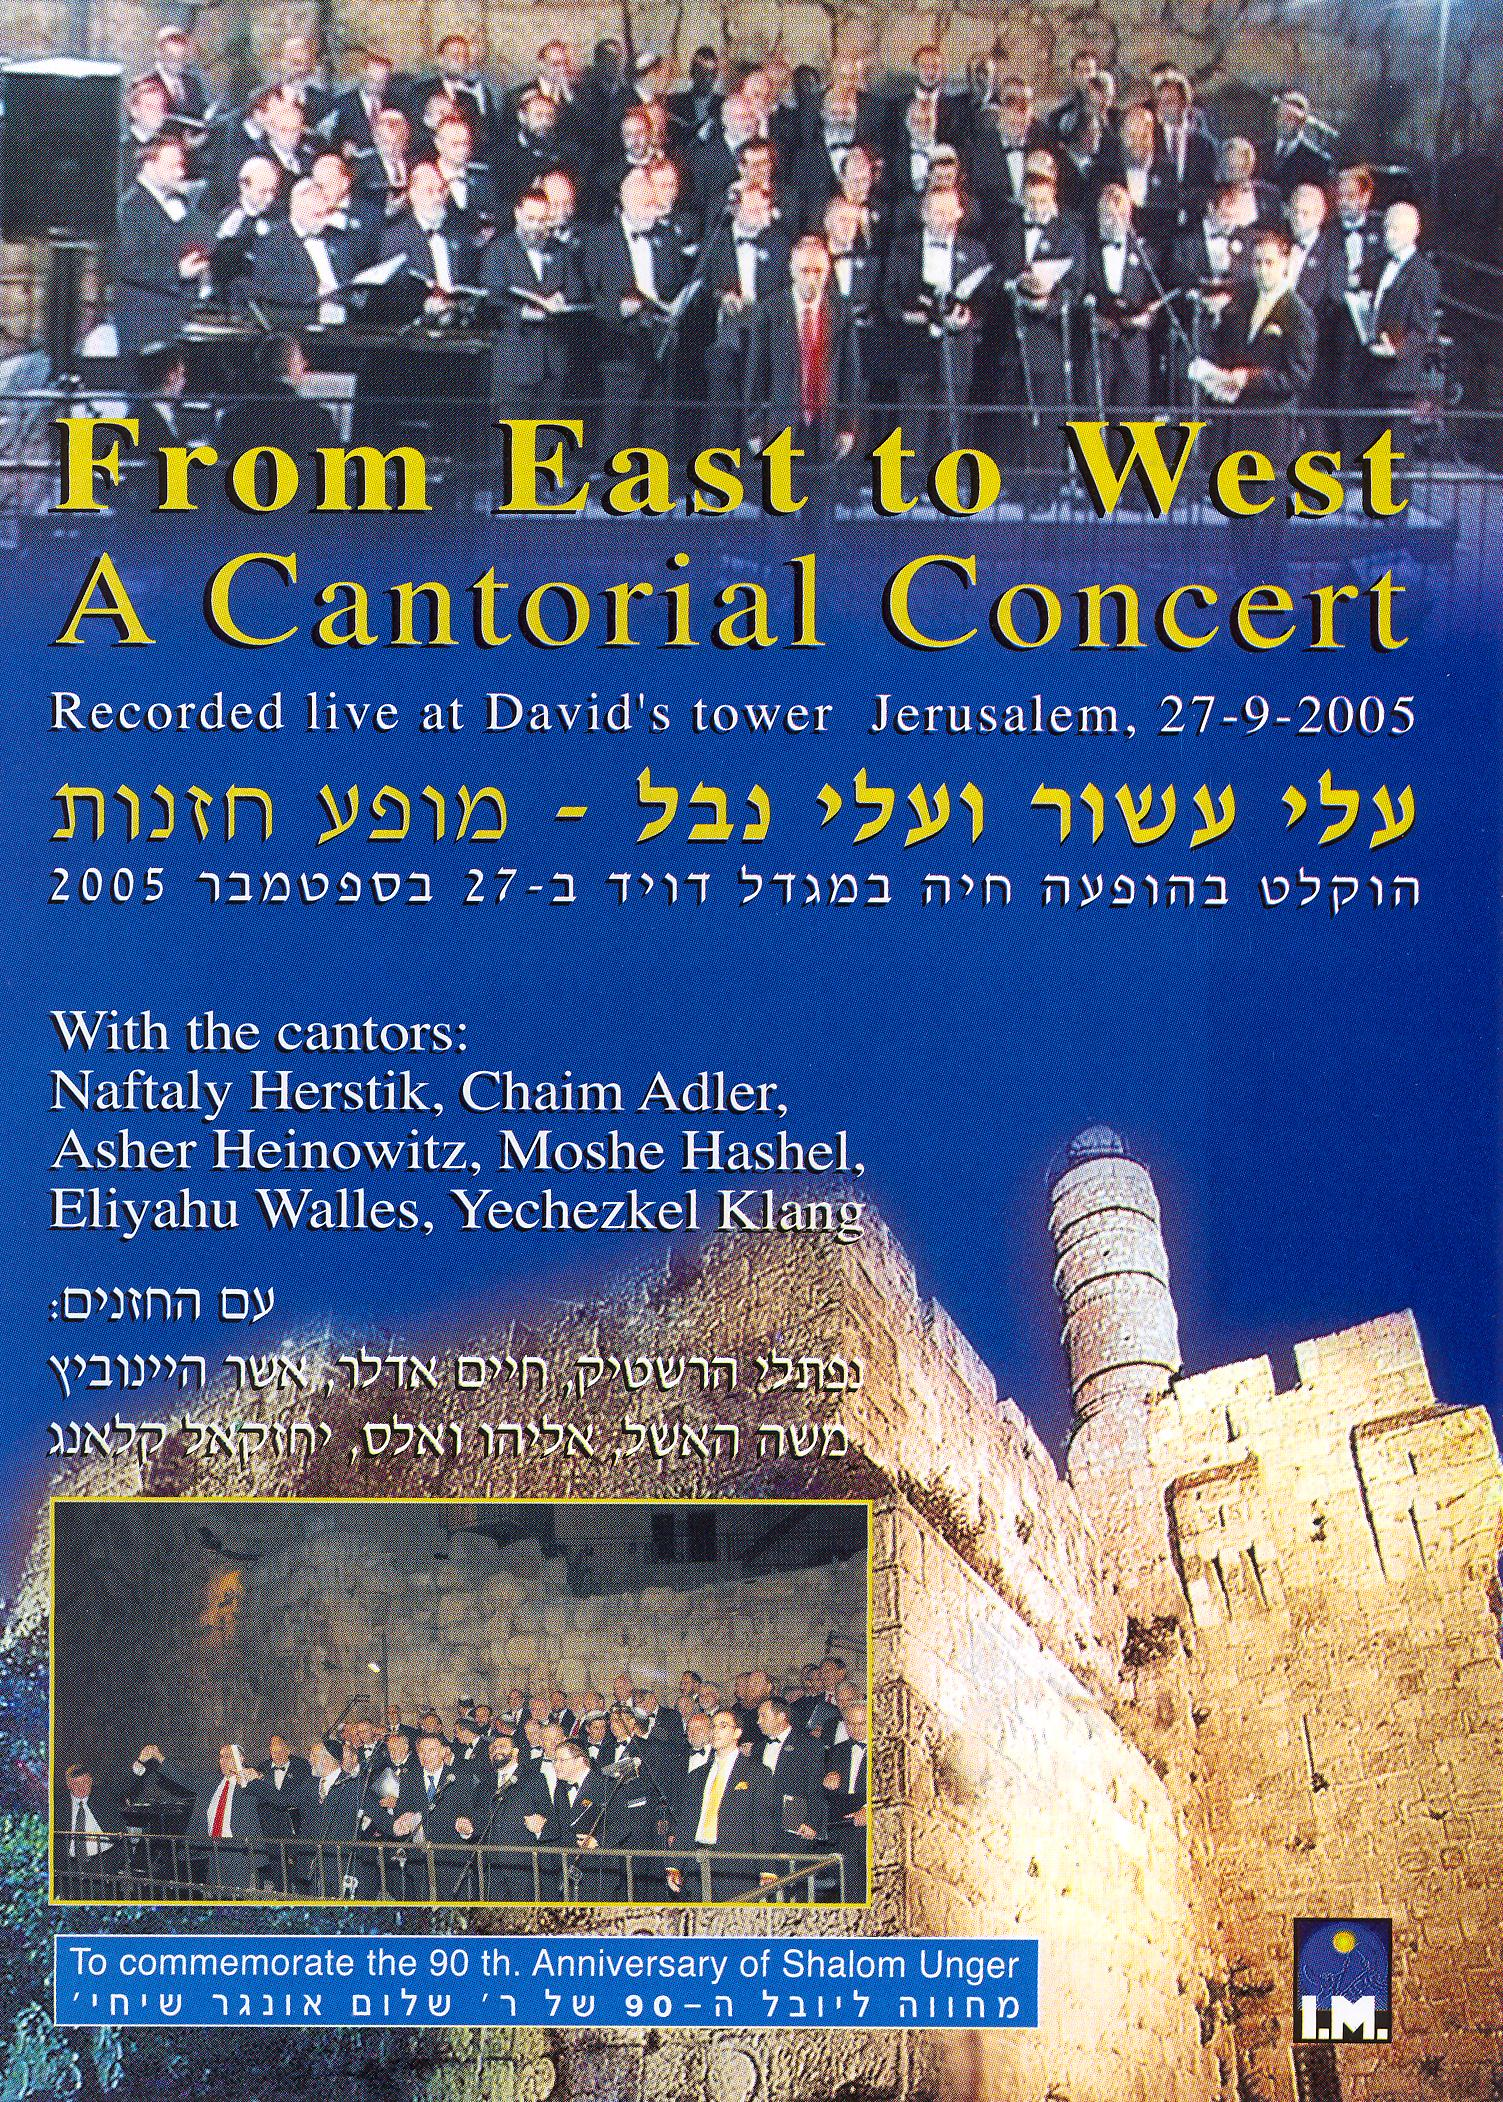 From East to West: Cantorial Concert